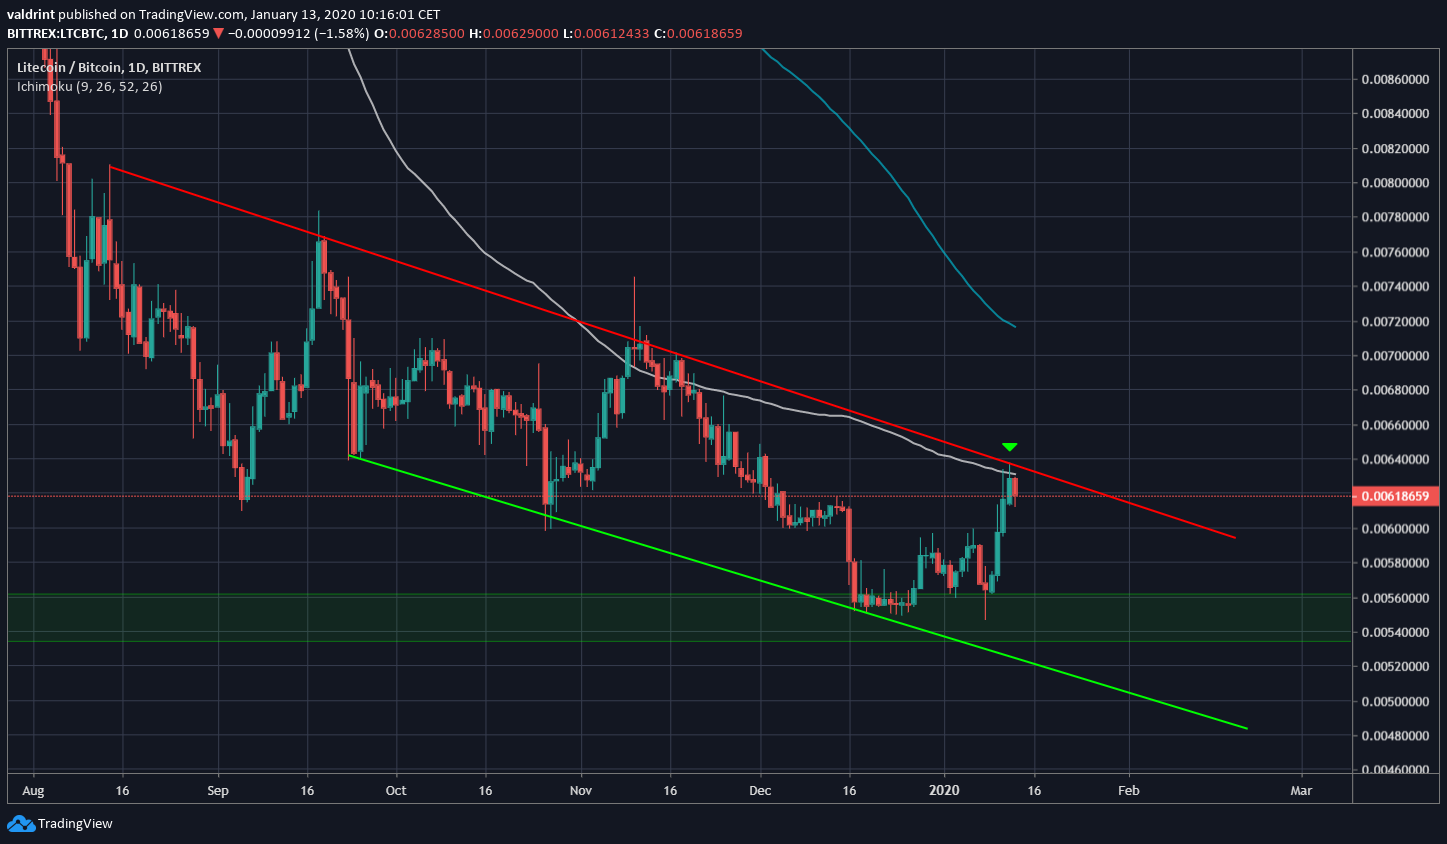 Litecoin Descending Channel